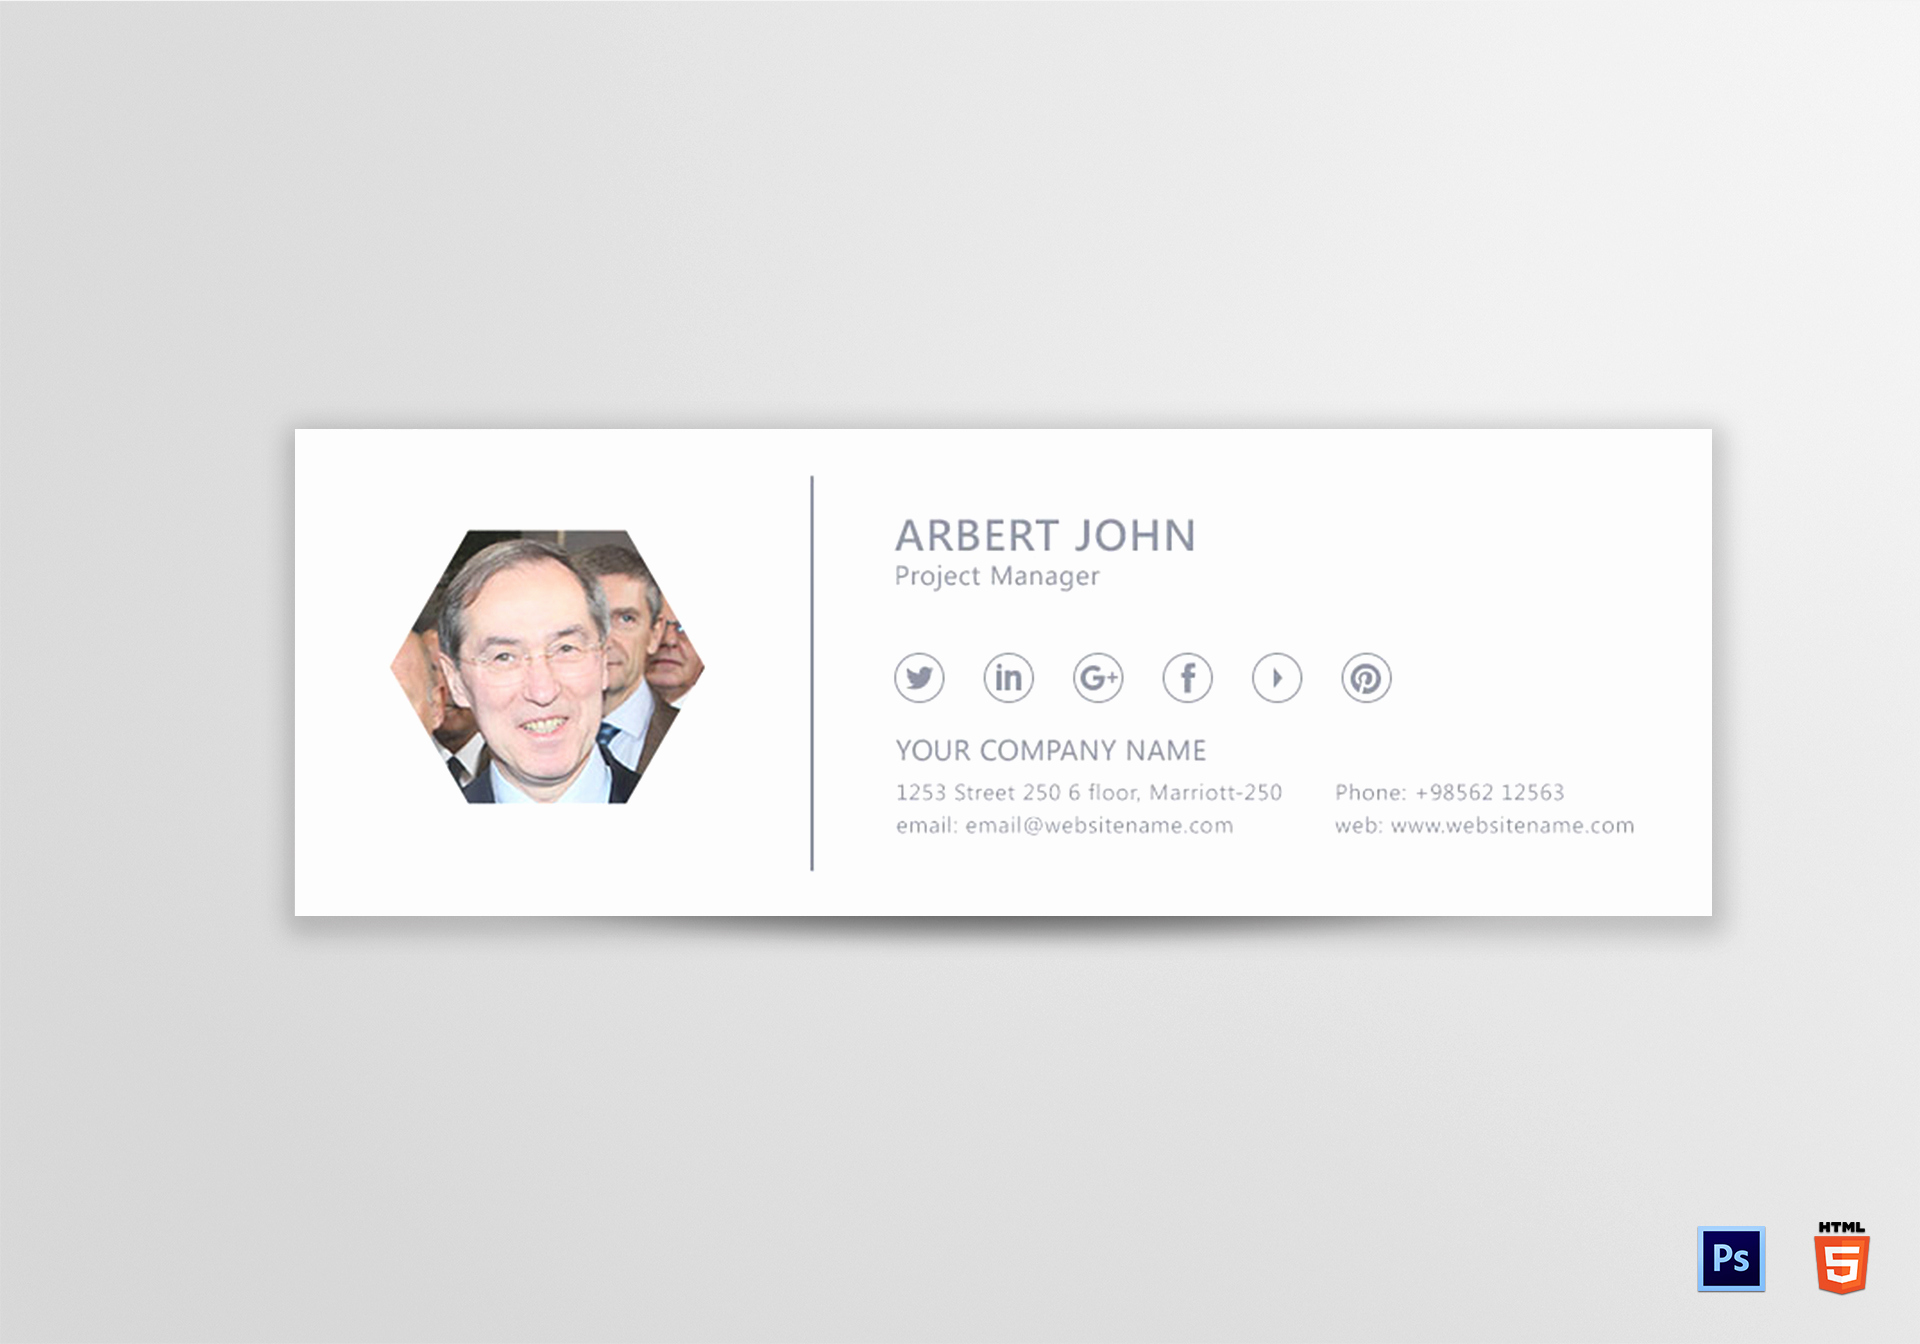 Html Email Signature Template Inspirational Project Manager Email Signature Design Template In Psd HTML